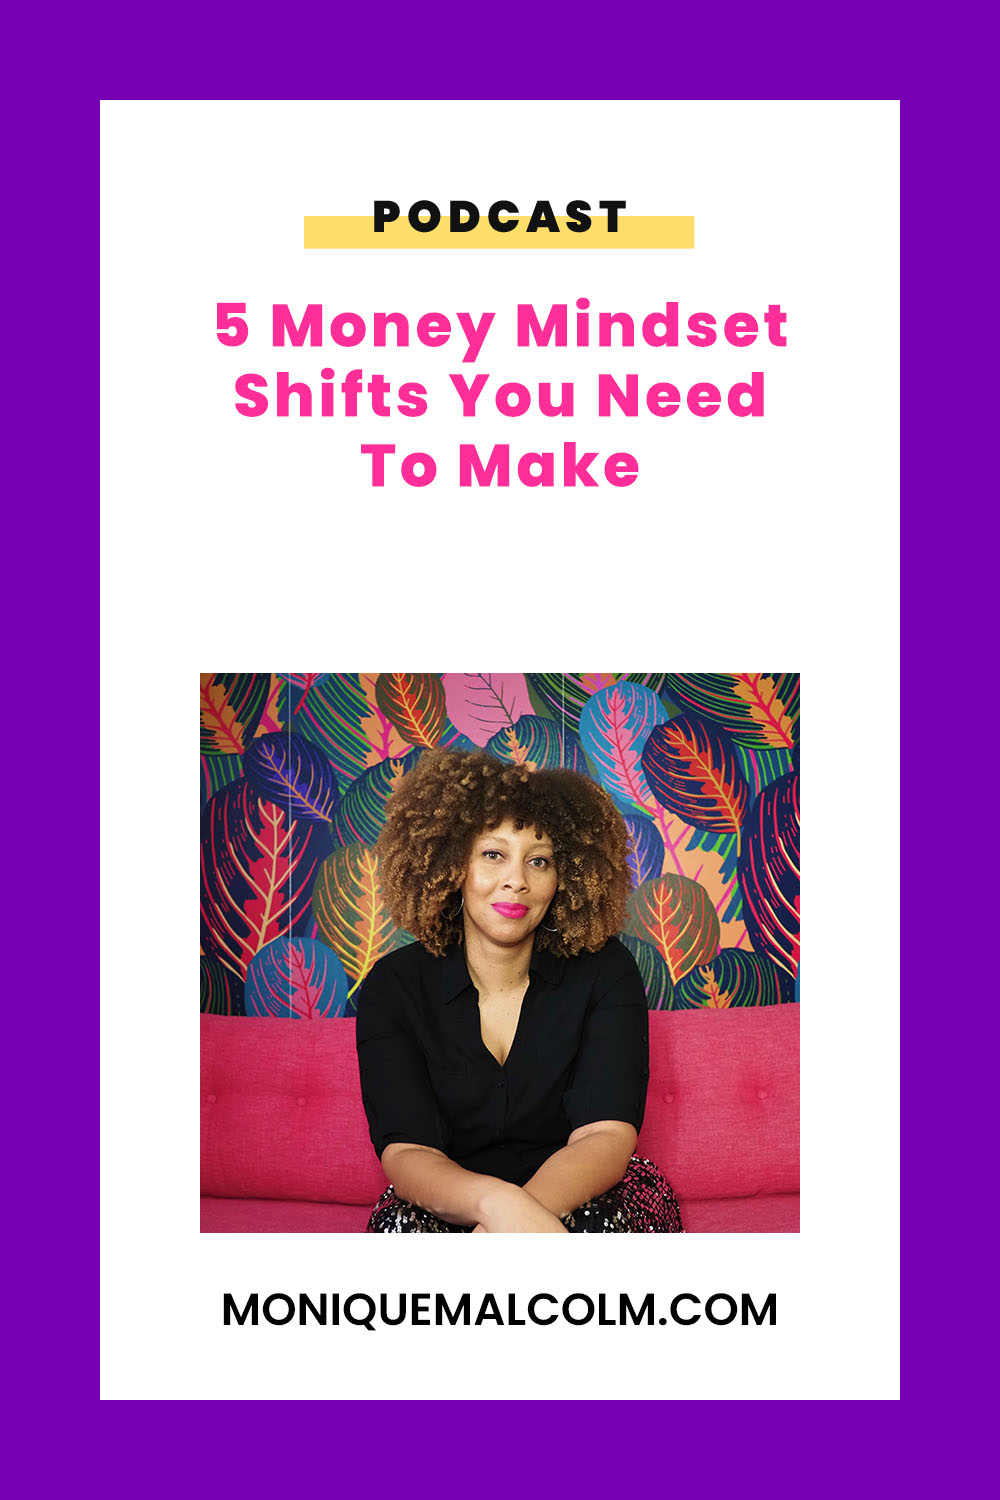 In this episode, Monique shares 5 mindset shifts that you need to make if you want to earn more money in your business.